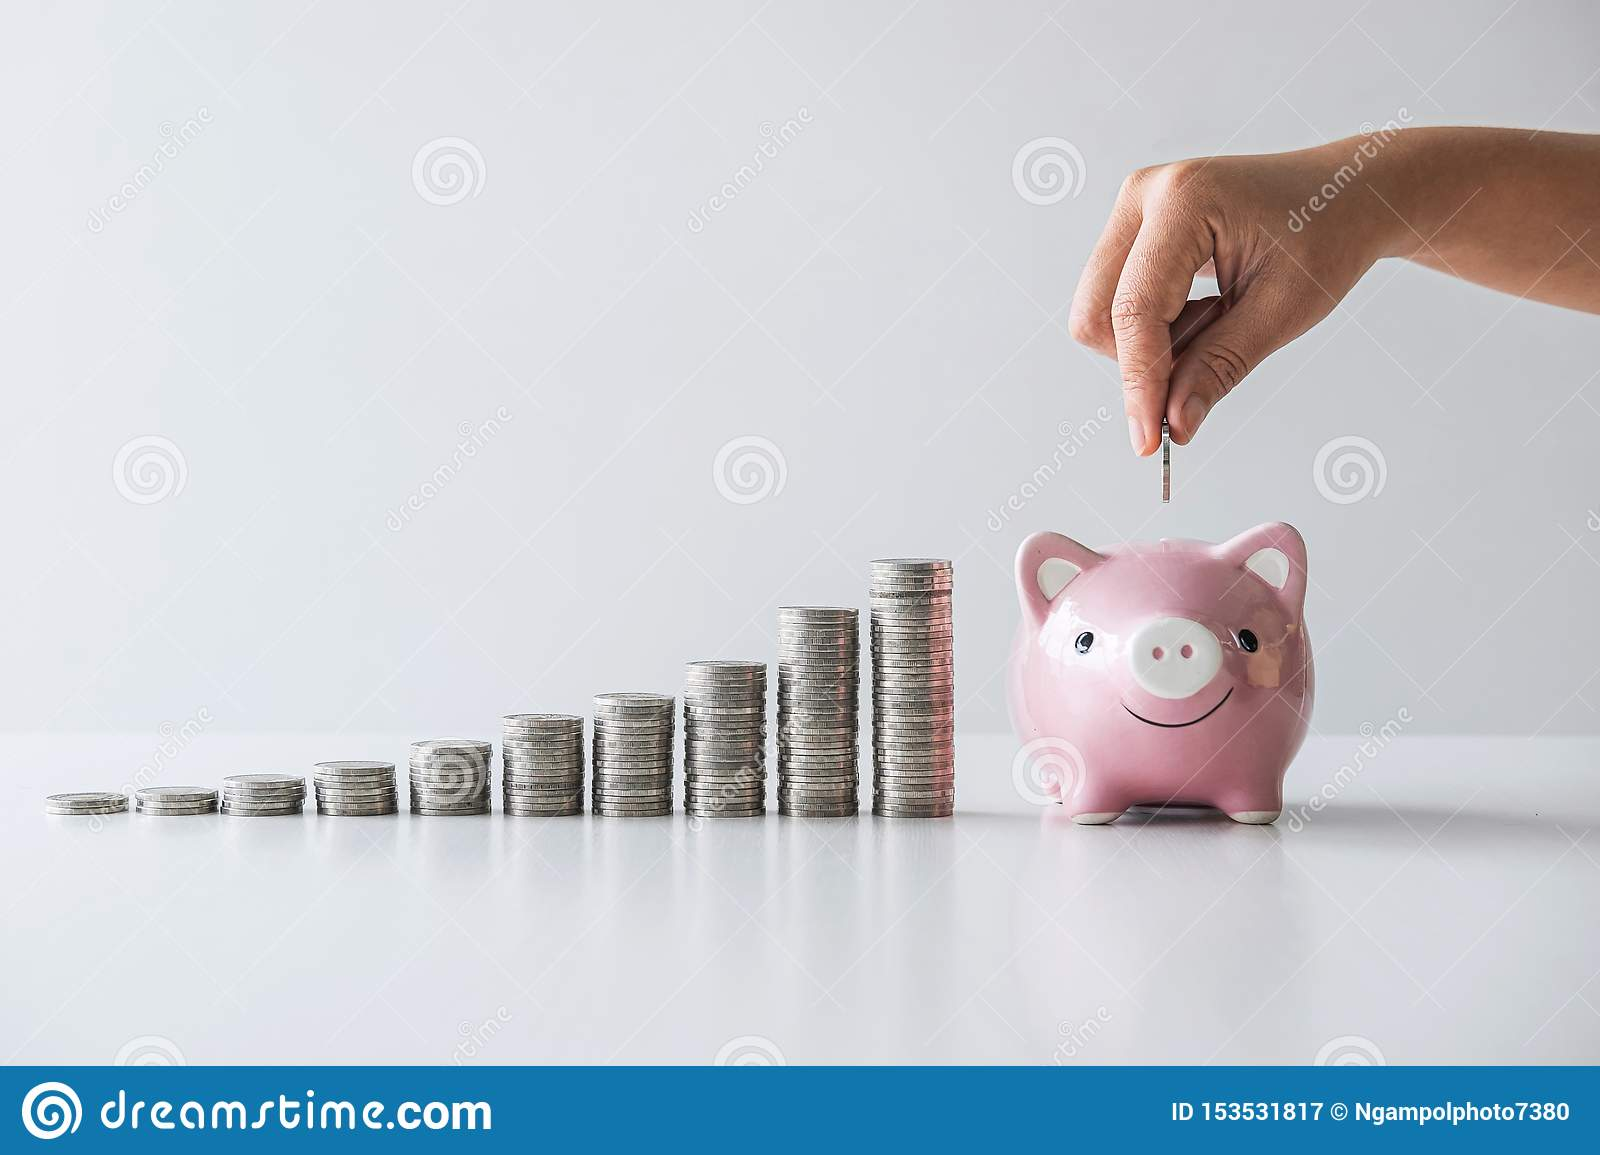 Images of stacking coins pile and Hand putting coin into pink piggy bank for planning step up to growing and savings with money